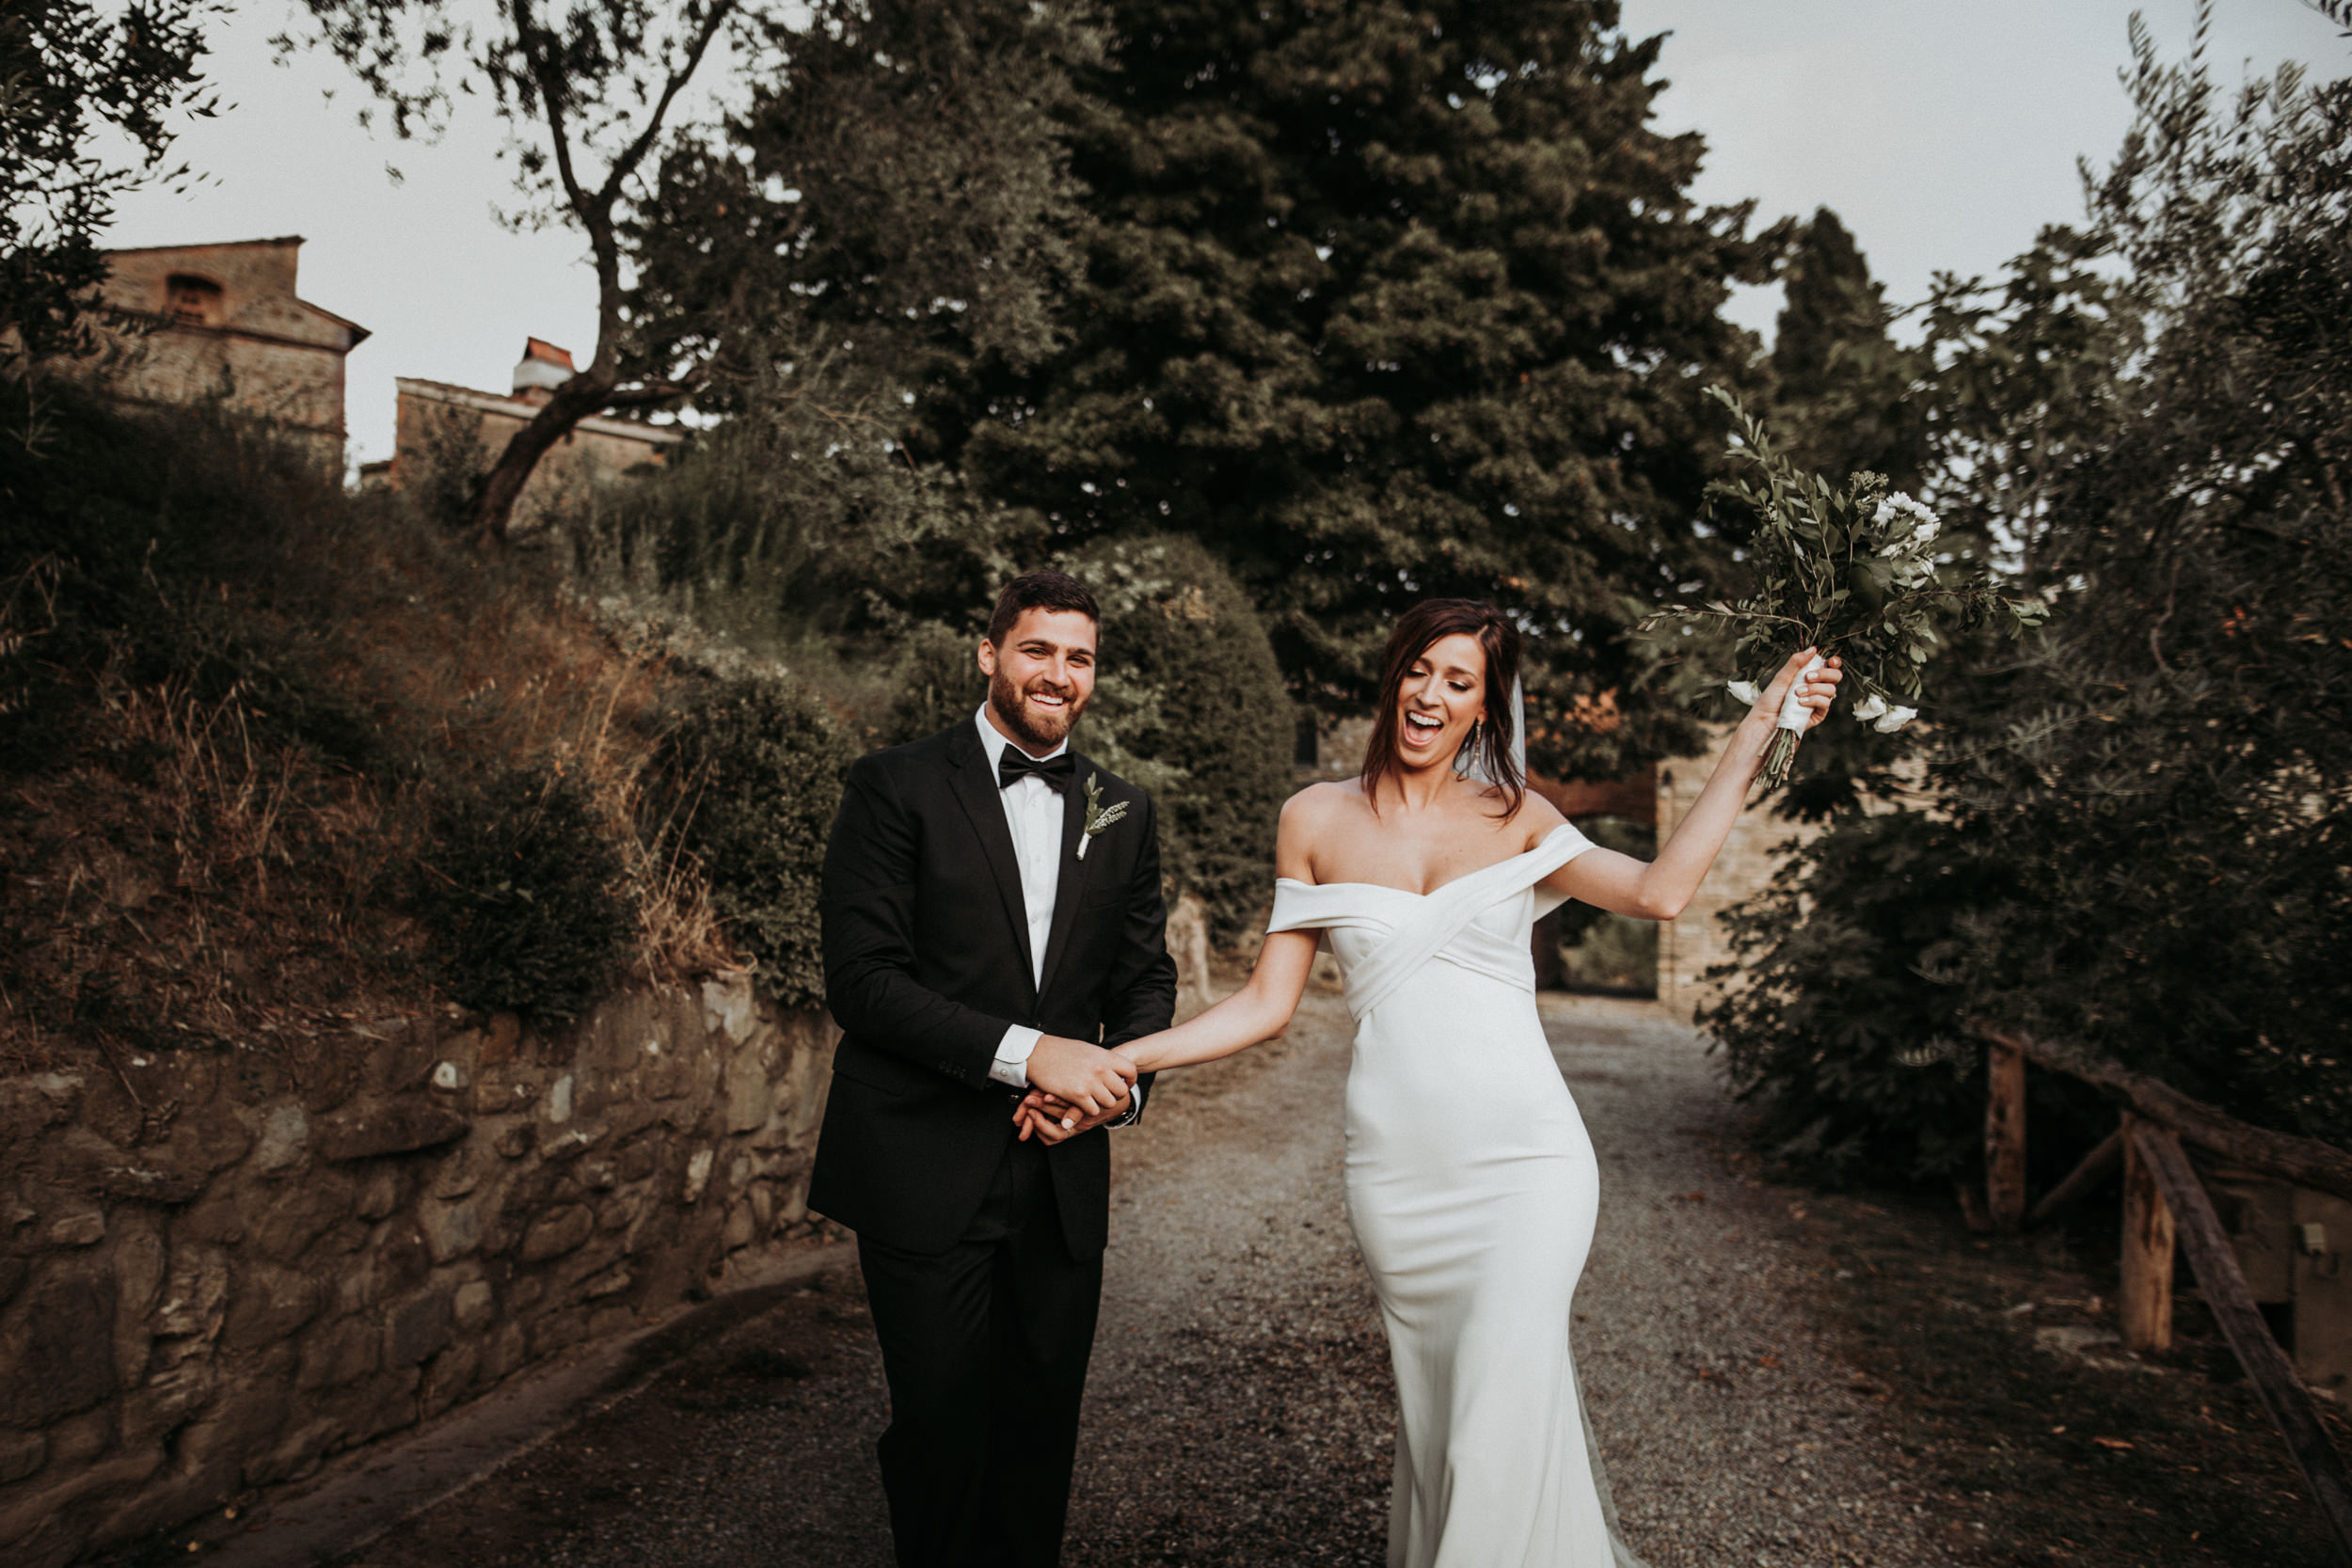 dm_photography_KW_Tuscanyweddingday_350